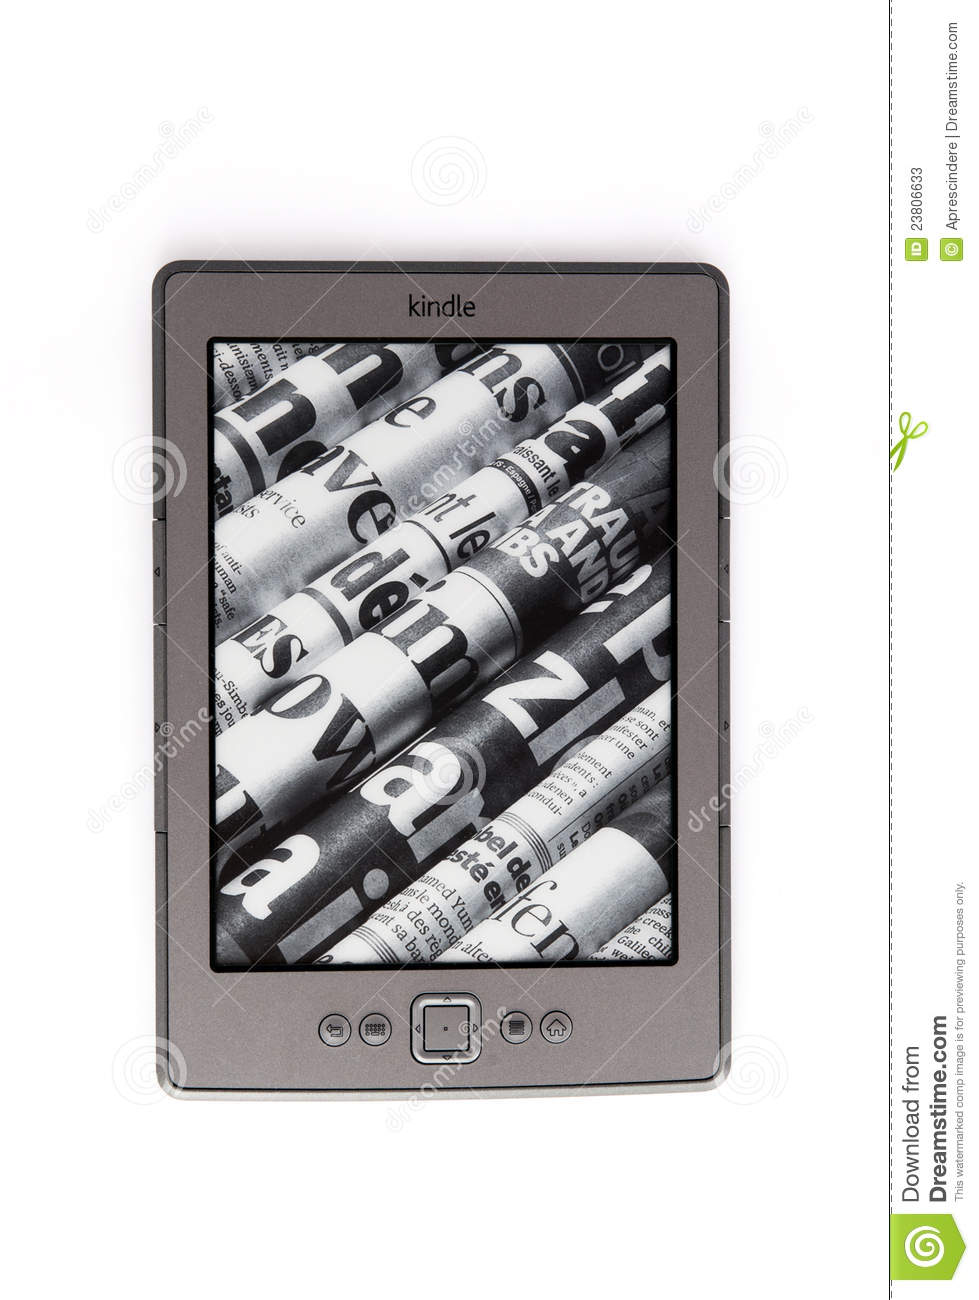 E-Book Reader Amazon Kindle Editorial Stock Photo - Image: 23806633